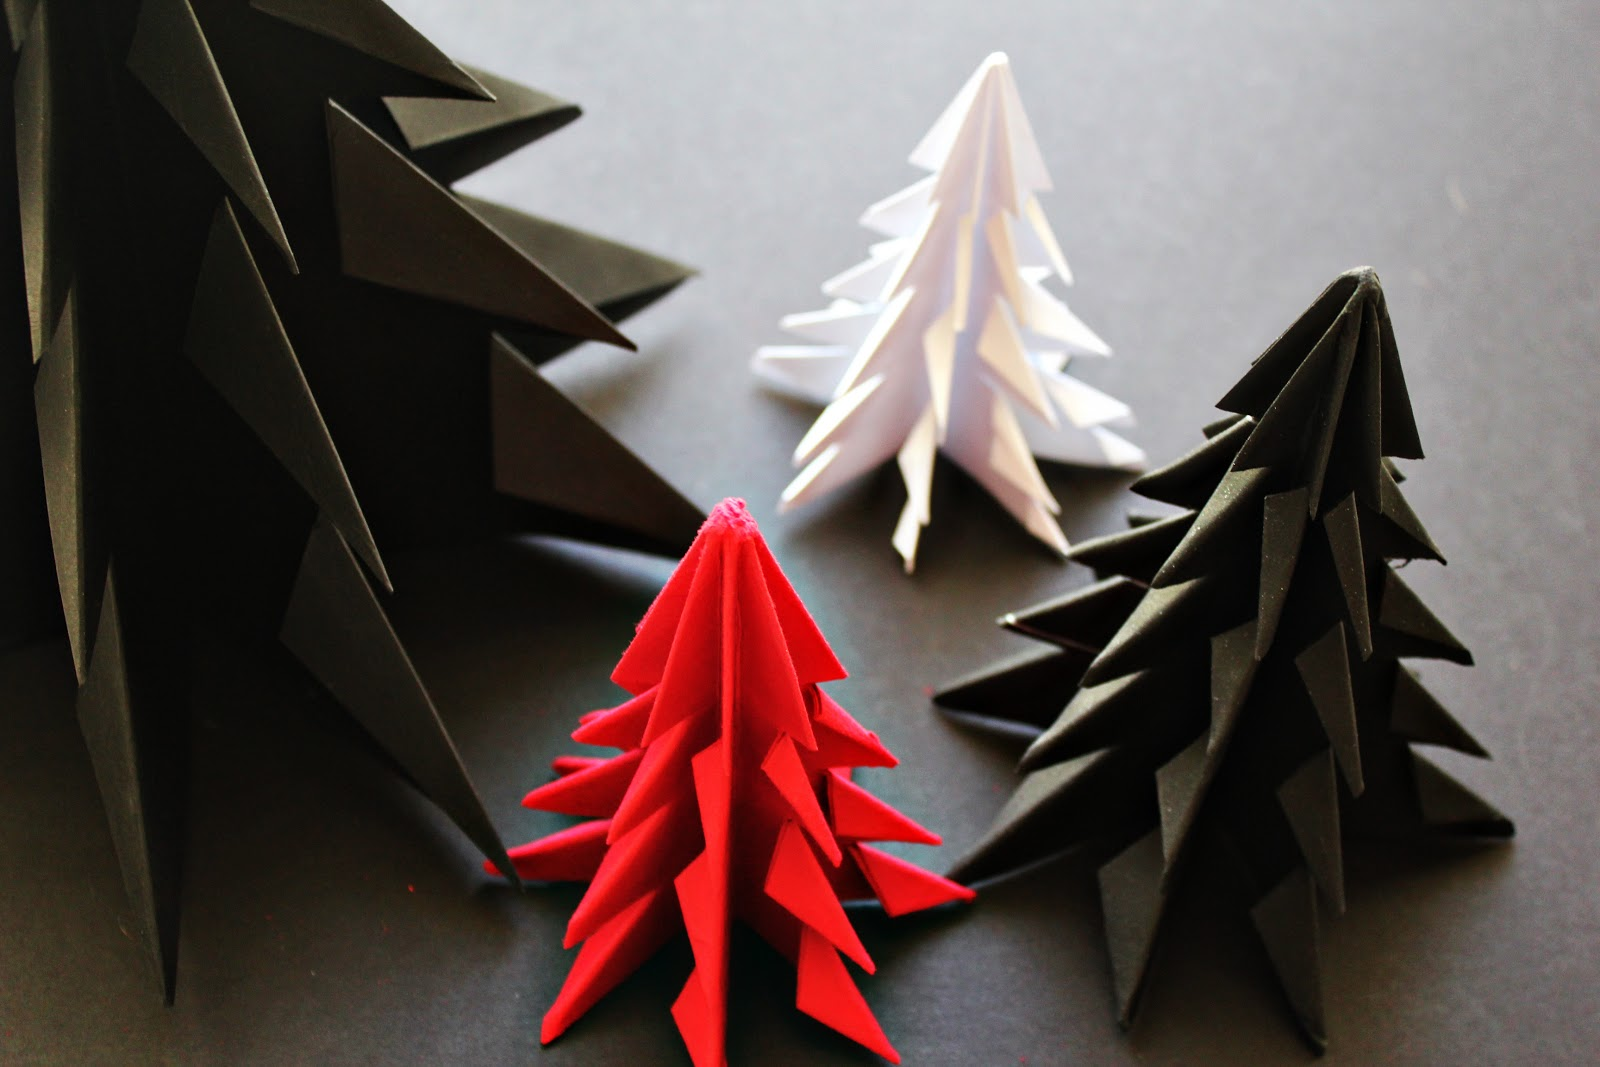 diy origami christmas tree minimal crafts. Black Bedroom Furniture Sets. Home Design Ideas